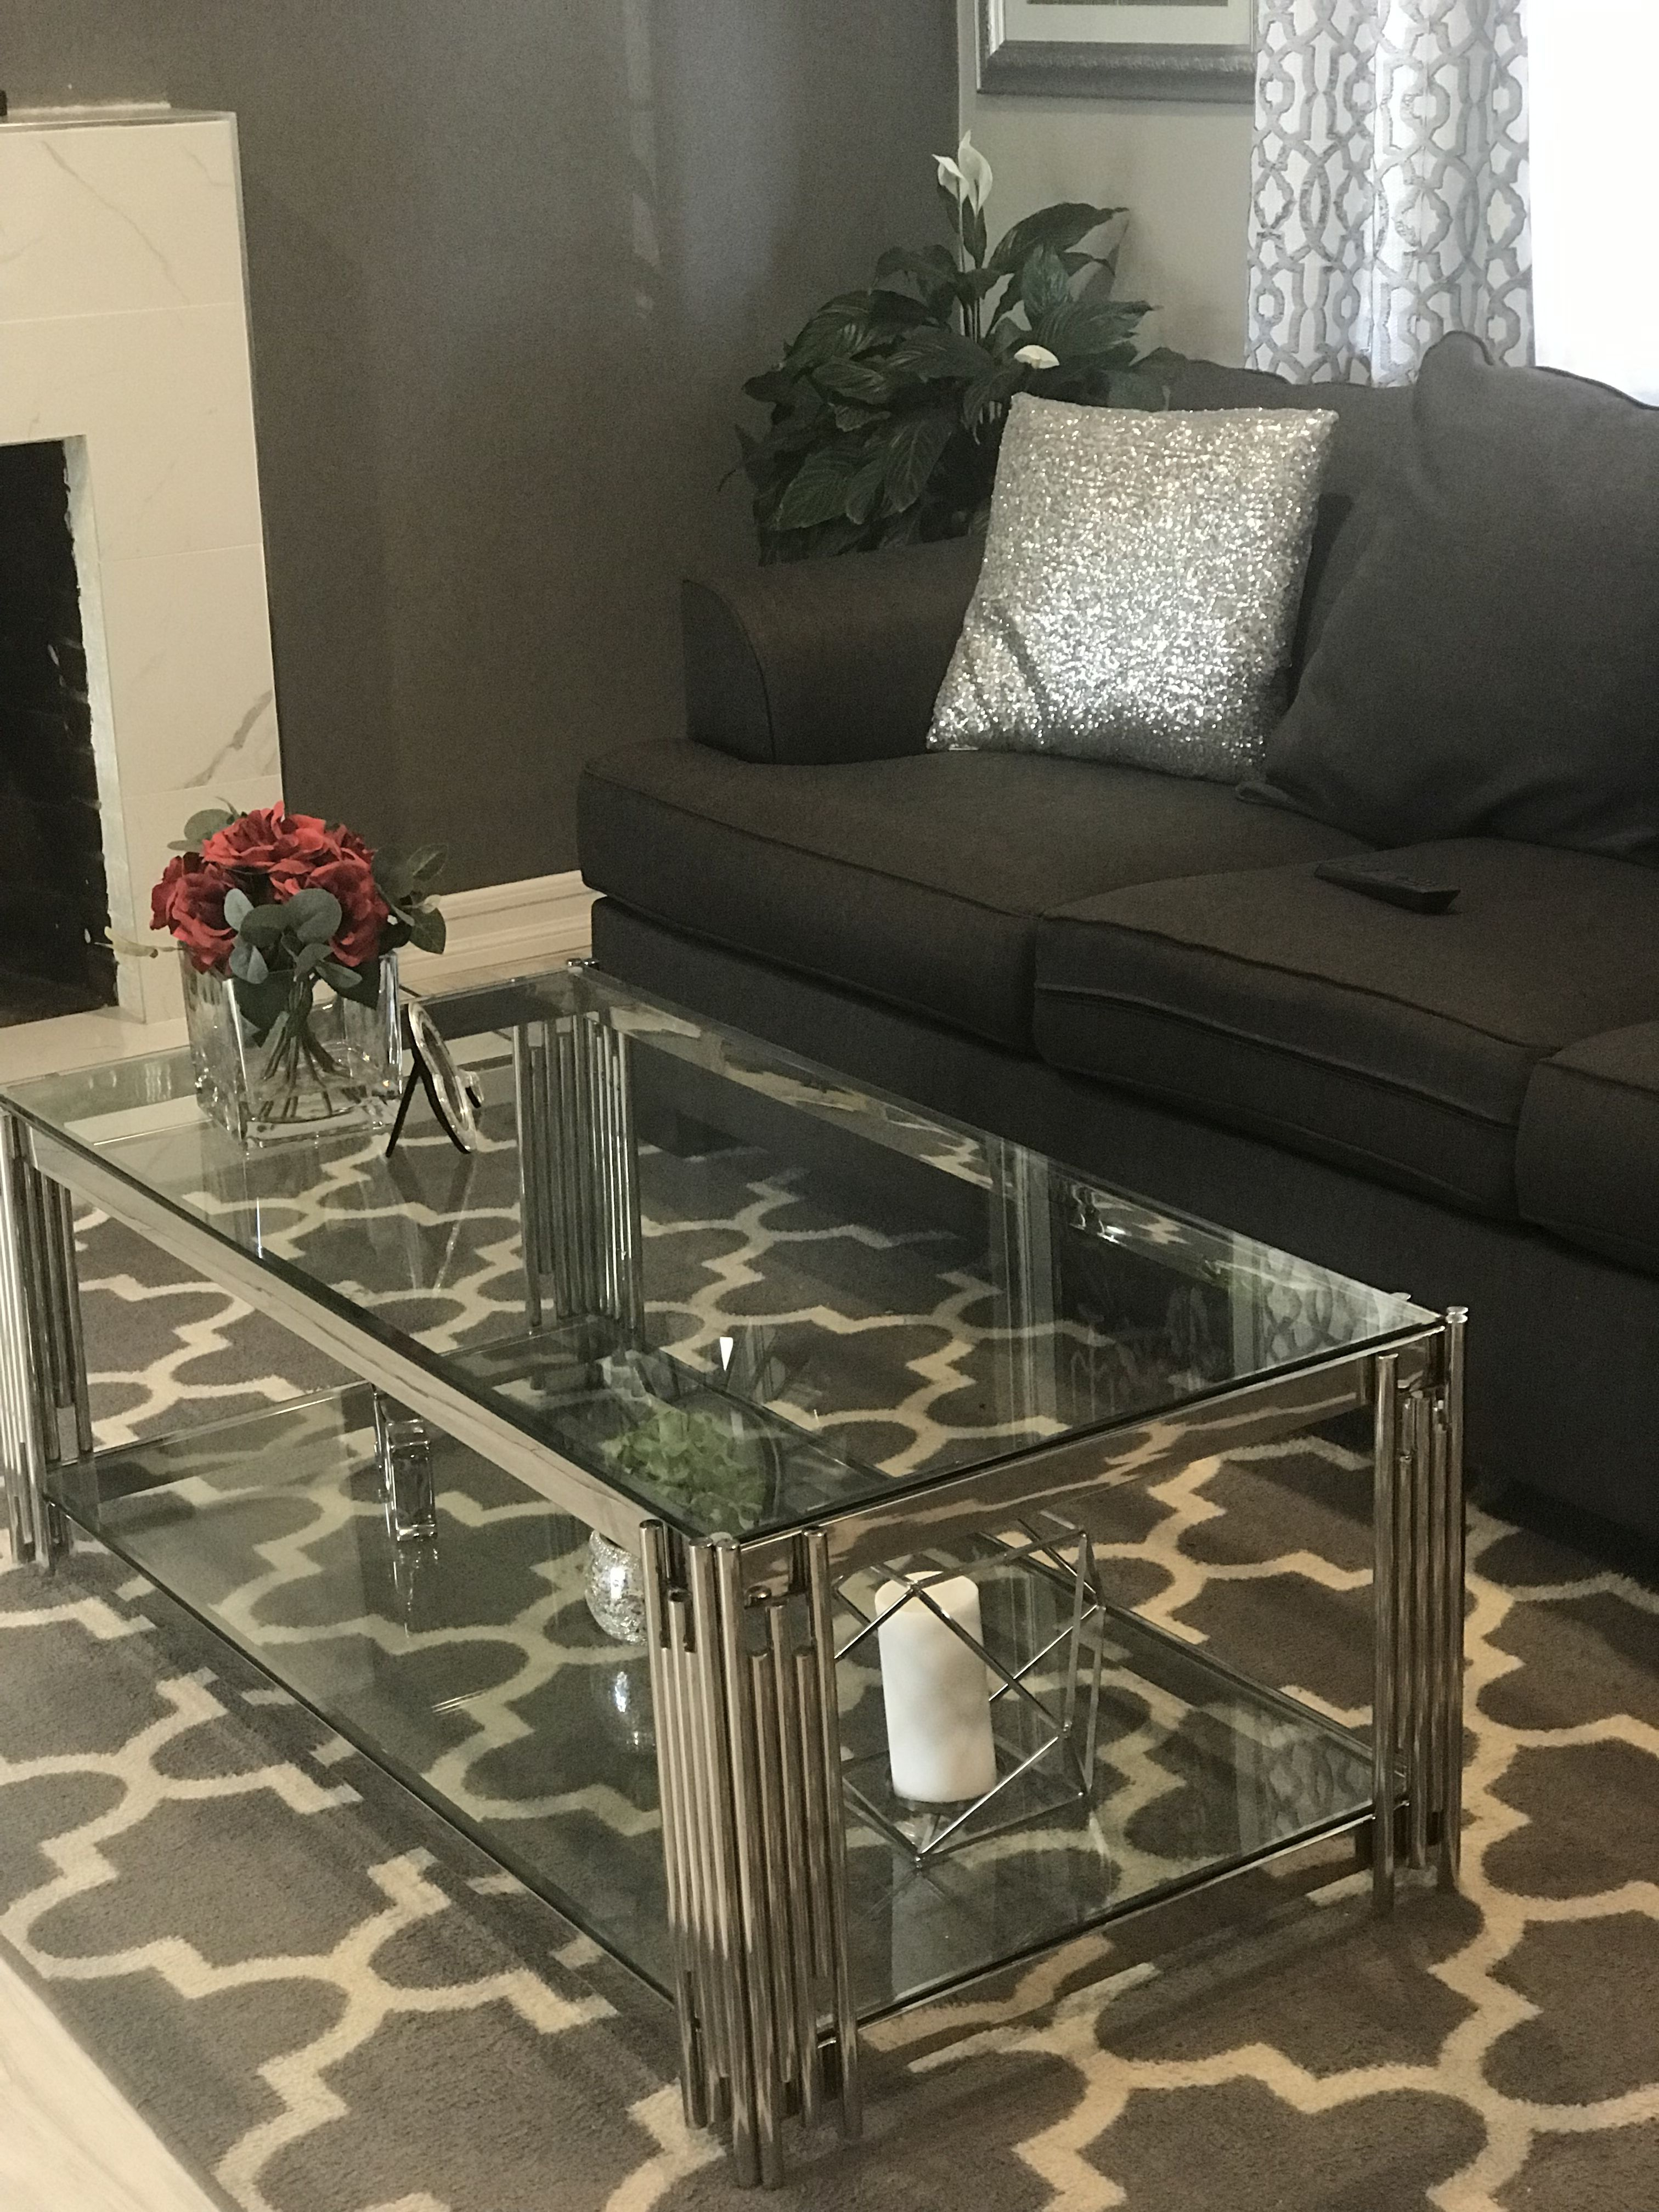 Grey Living Room Glass Coffee Table Decor Glass Coffee Table Decor Glass Coffee Table Decorating Coffee Tables [ 4032 x 3024 Pixel ]